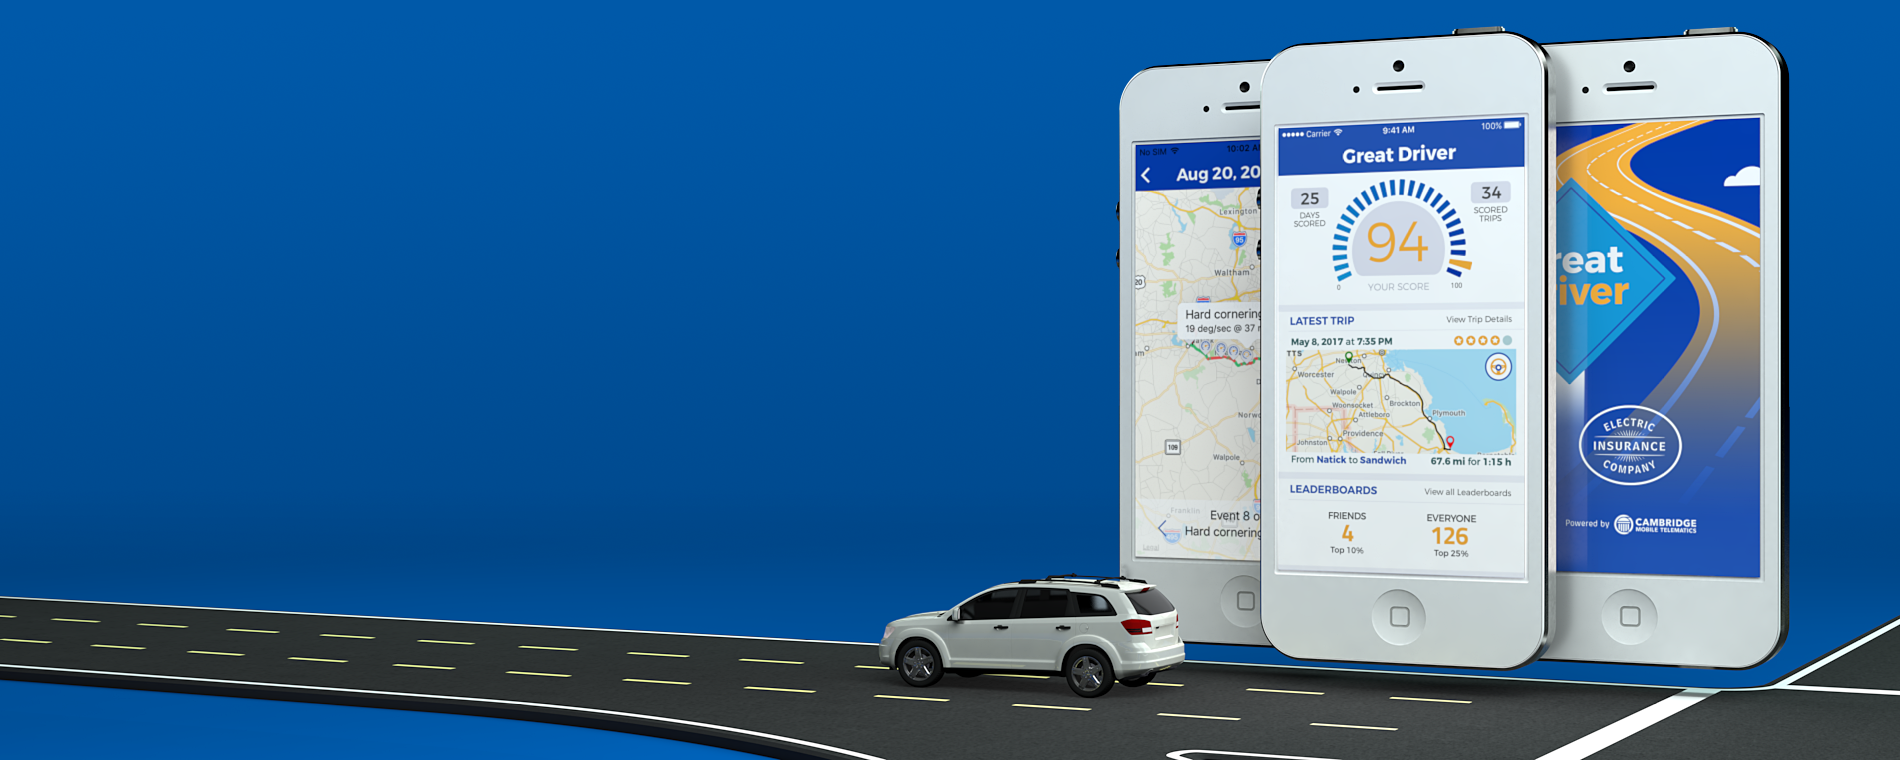 Save up to 10% on your car insurance when you enroll in the Great Driver app